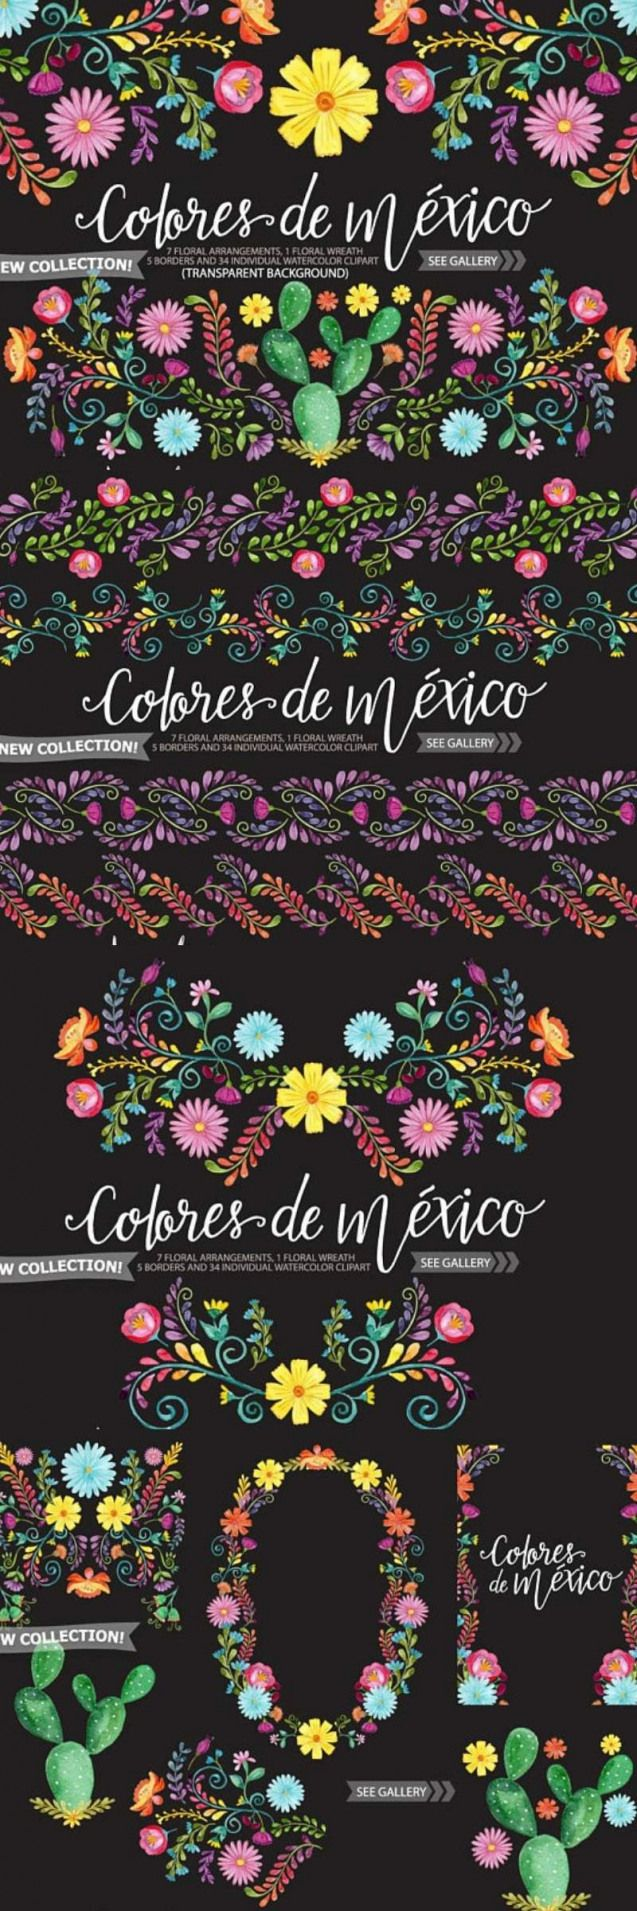 Mexican Watercolor Floral clipart. Ad #graphicdesign #flowers #floral #cincodemayo #cinco #de #mayo #clipart